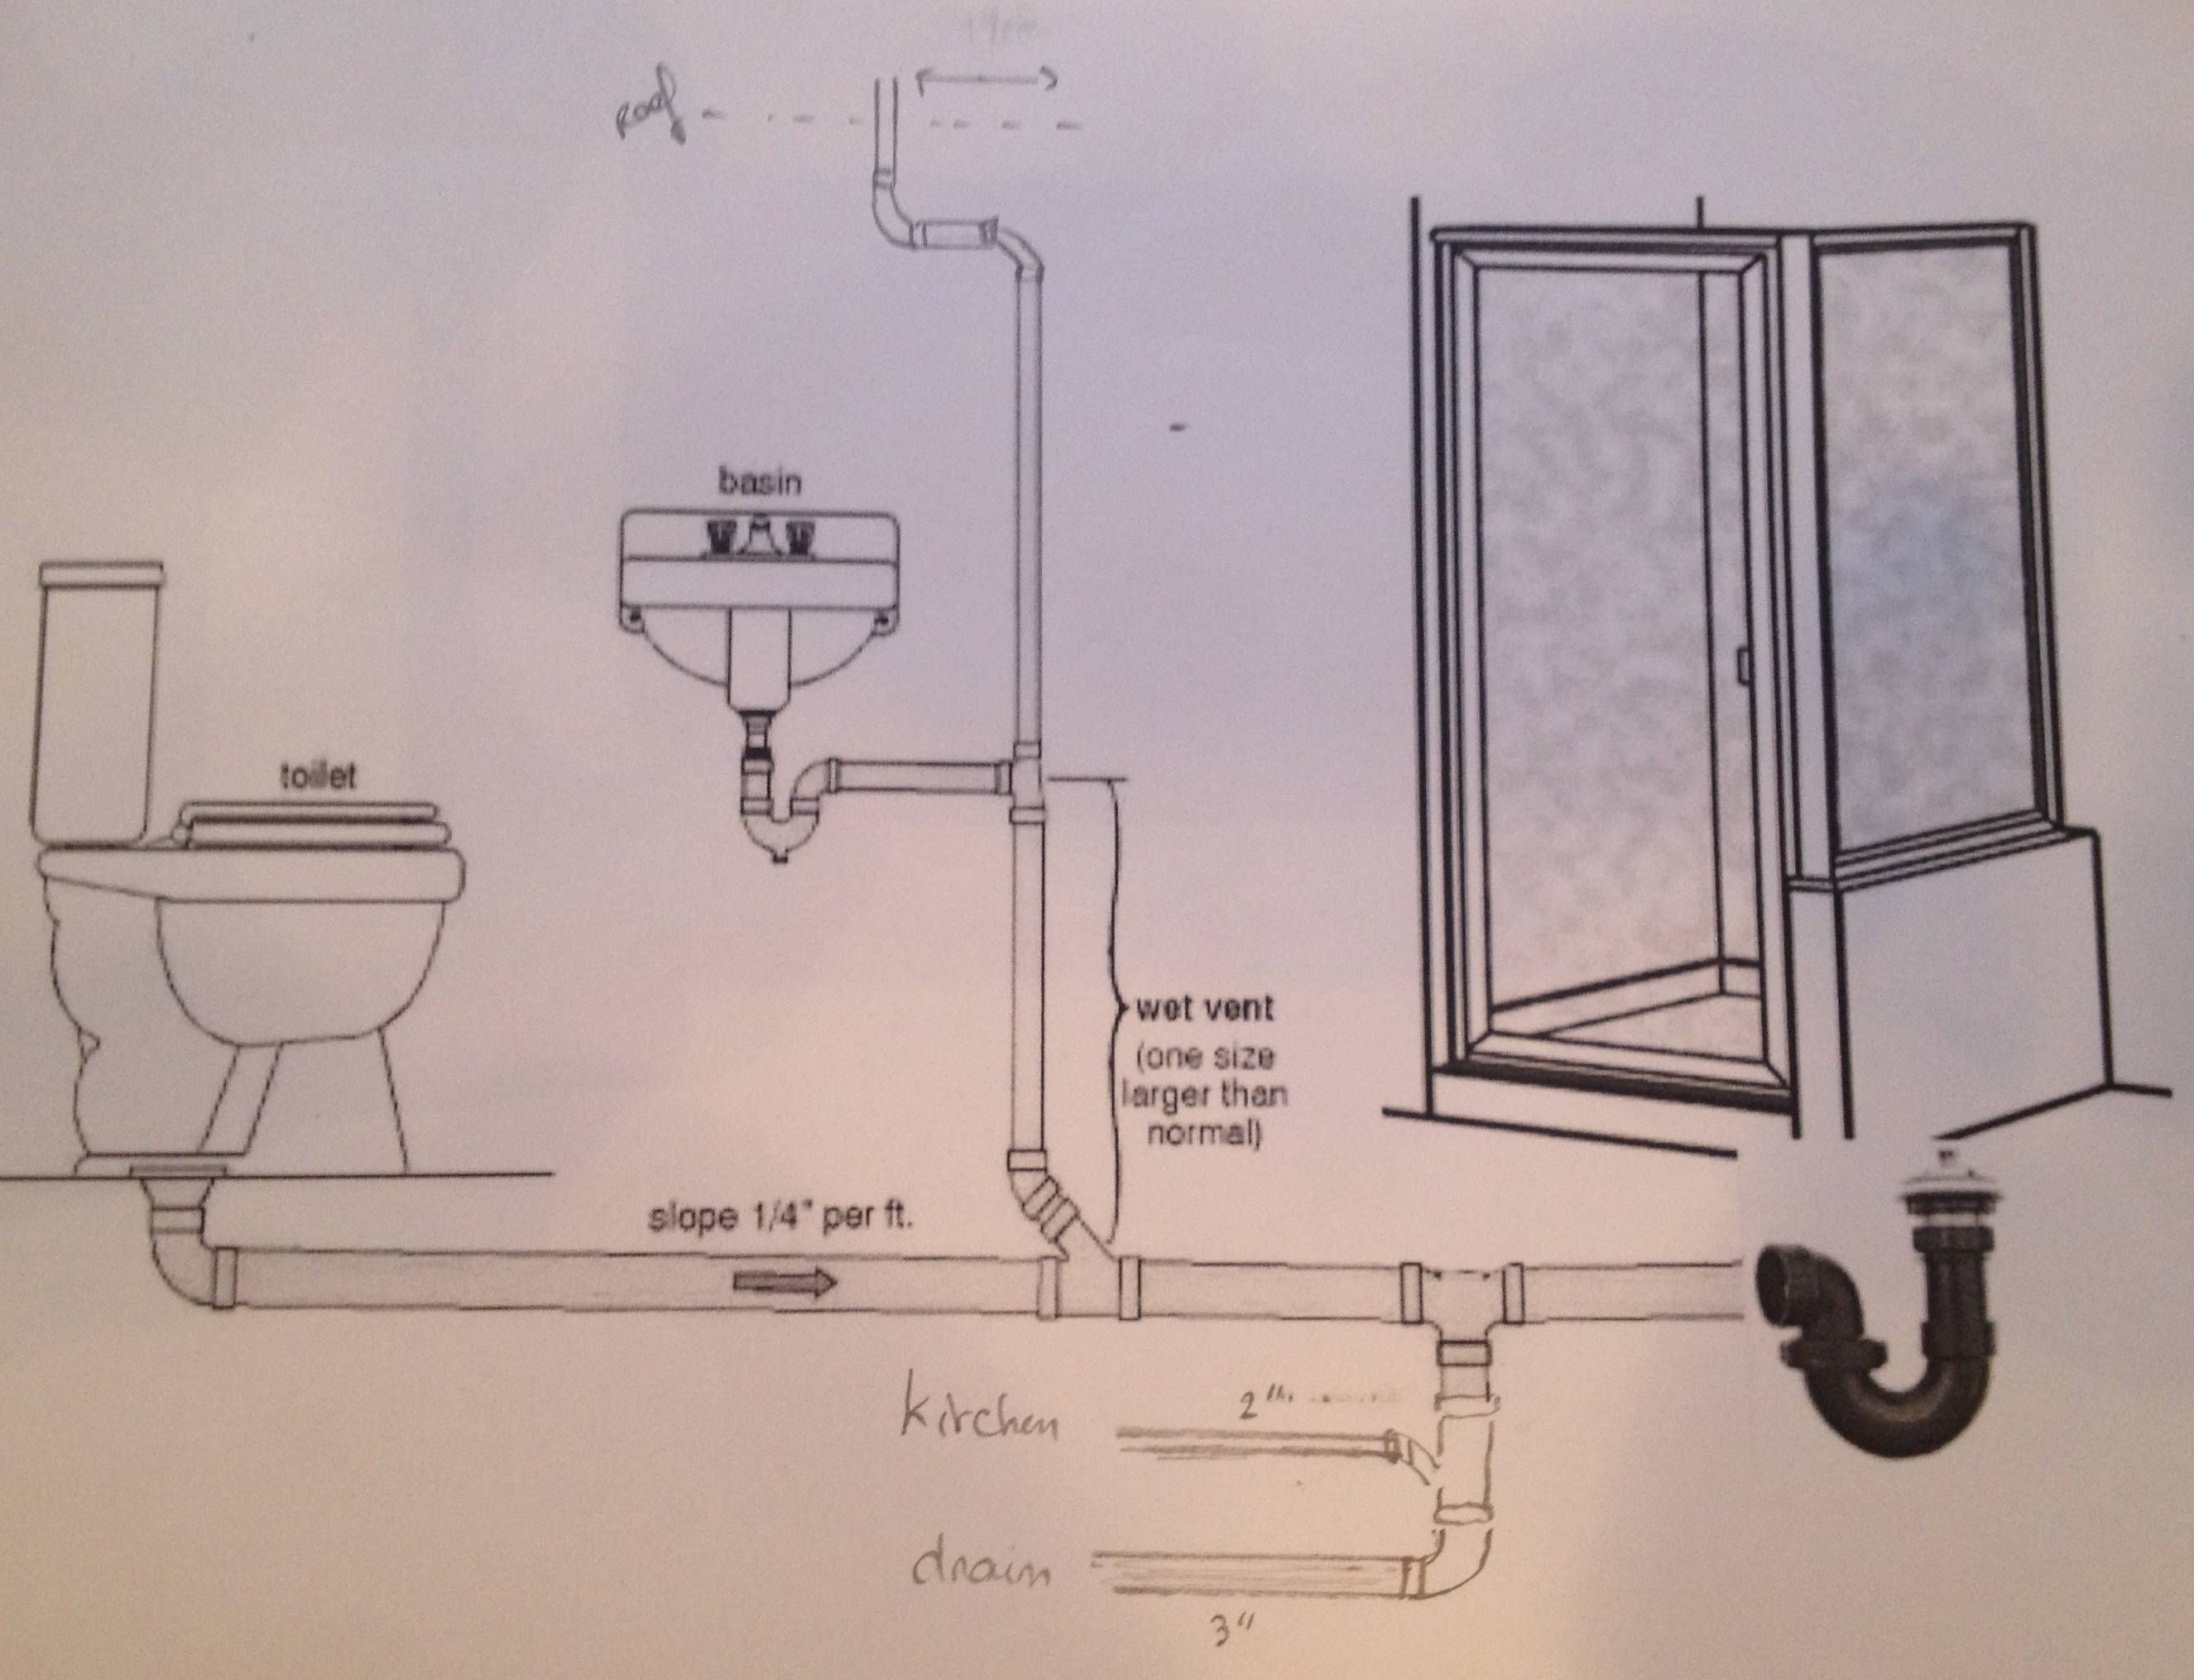 Install Shower Plumbing Diagram For Simplicity Riding Lawn Mower Wiring Stylish Drain Piping Bathroom Home